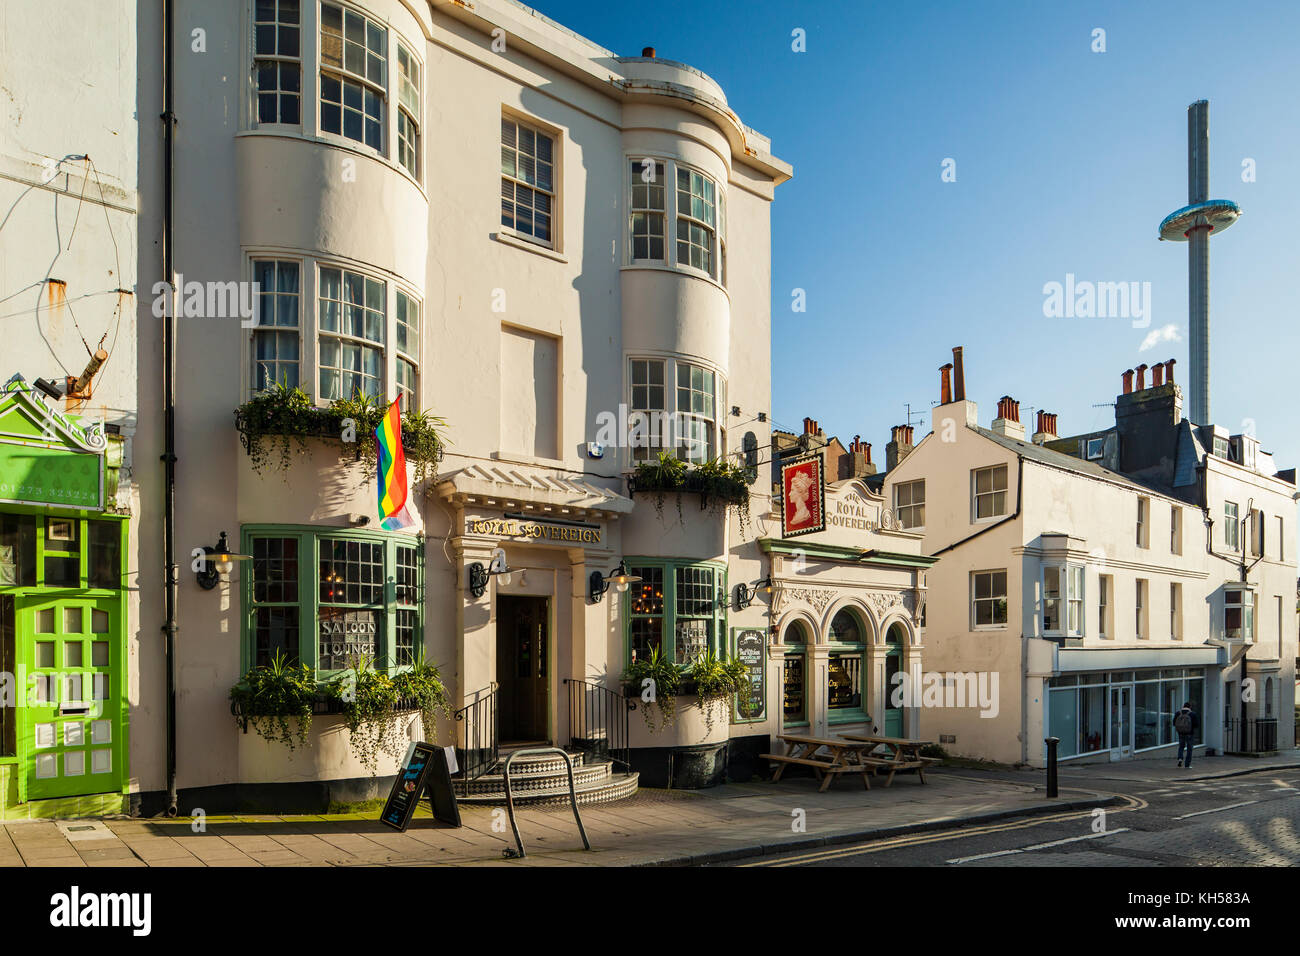 Autumn afternoon in Brighton city centre, East Sussex, England. - Stock Image